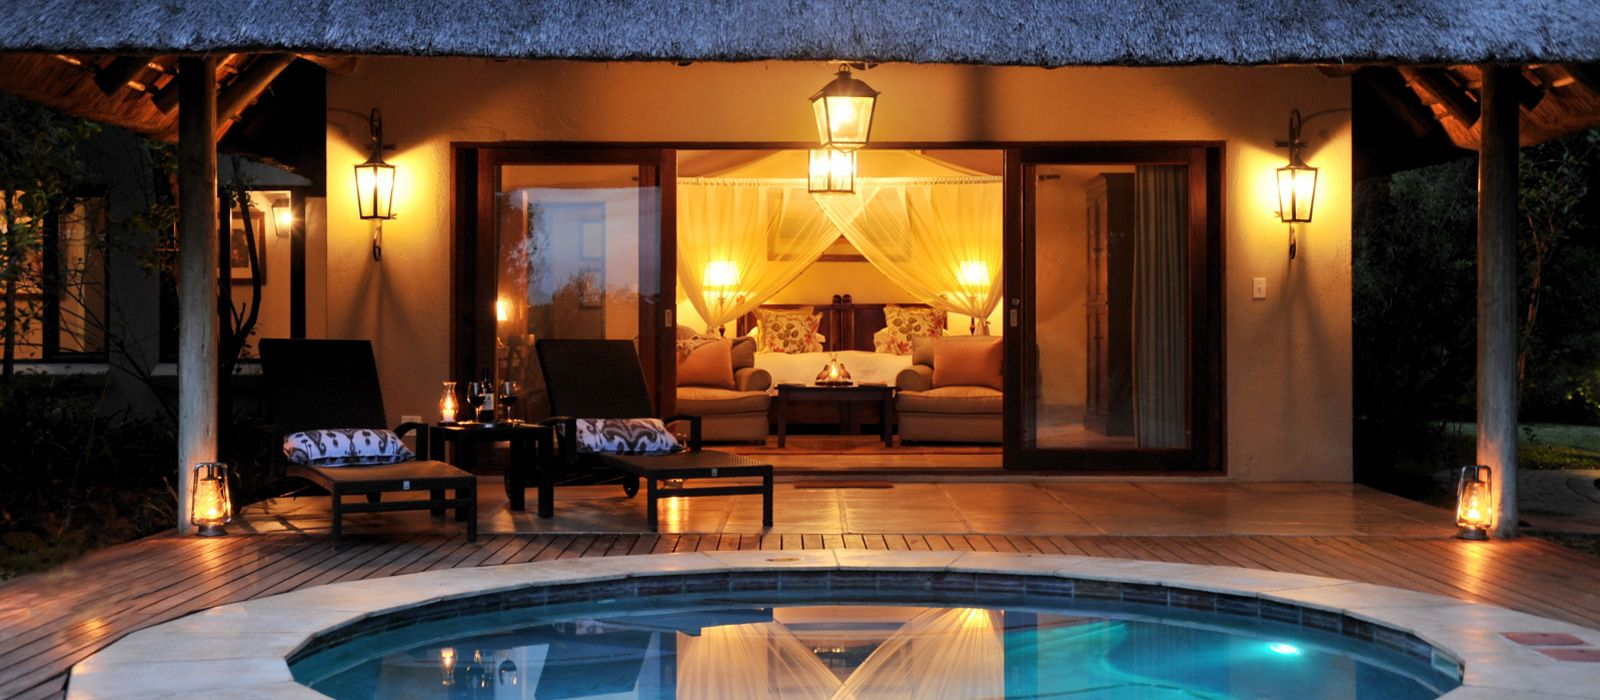 Hotel Savanna Private Game Lodge South Africa